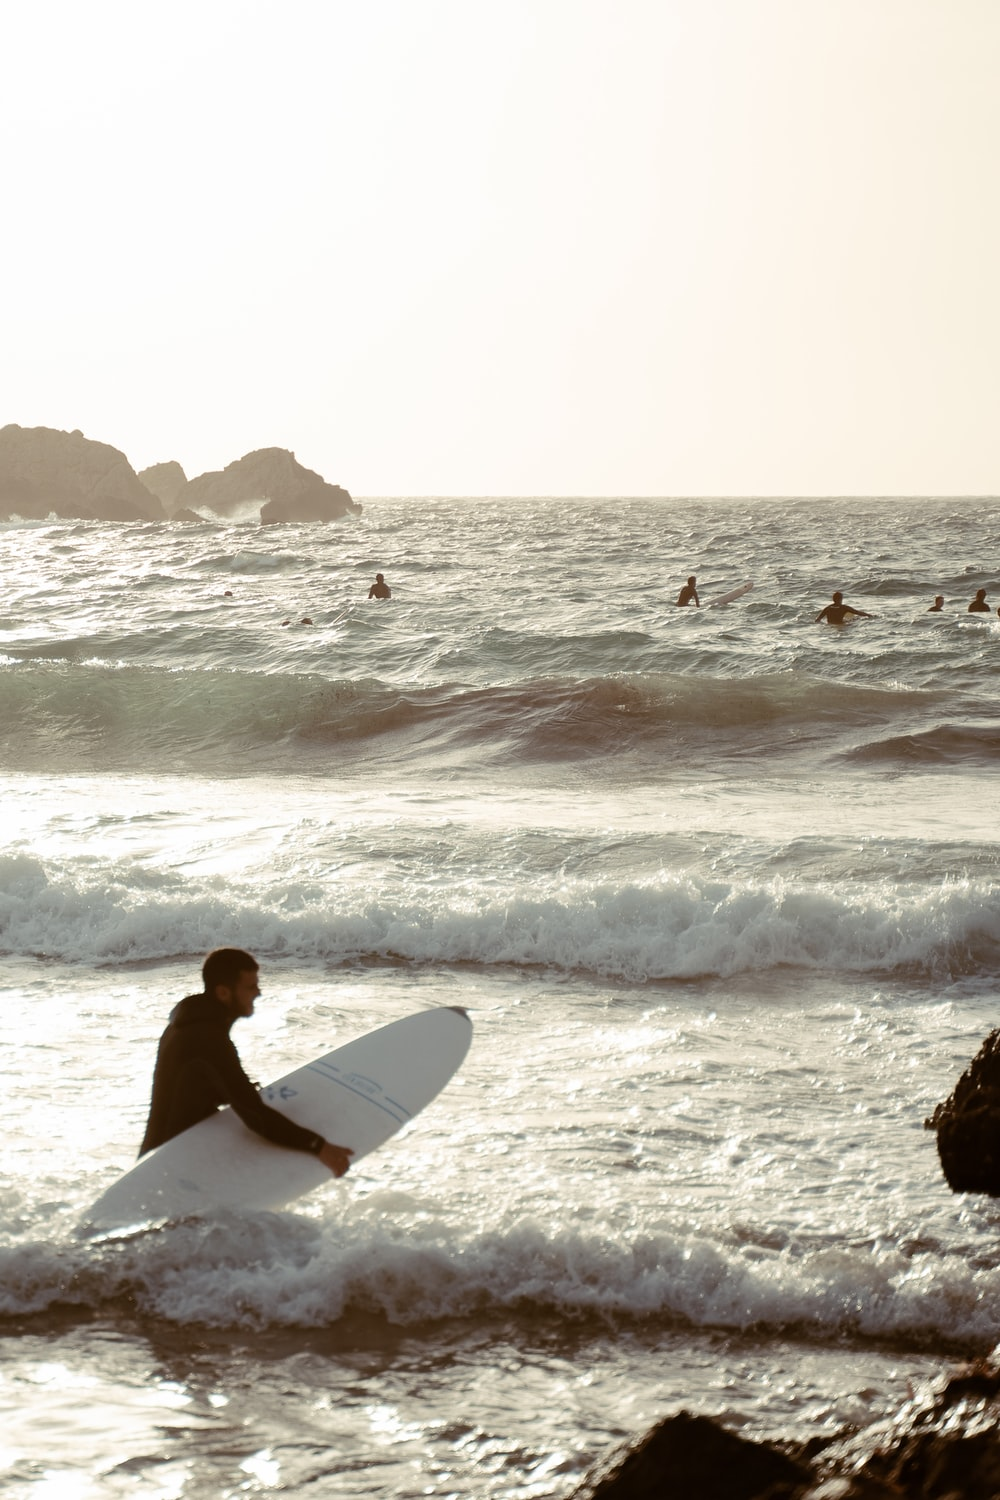 man in white surfboard surfing on sea waves during daytime